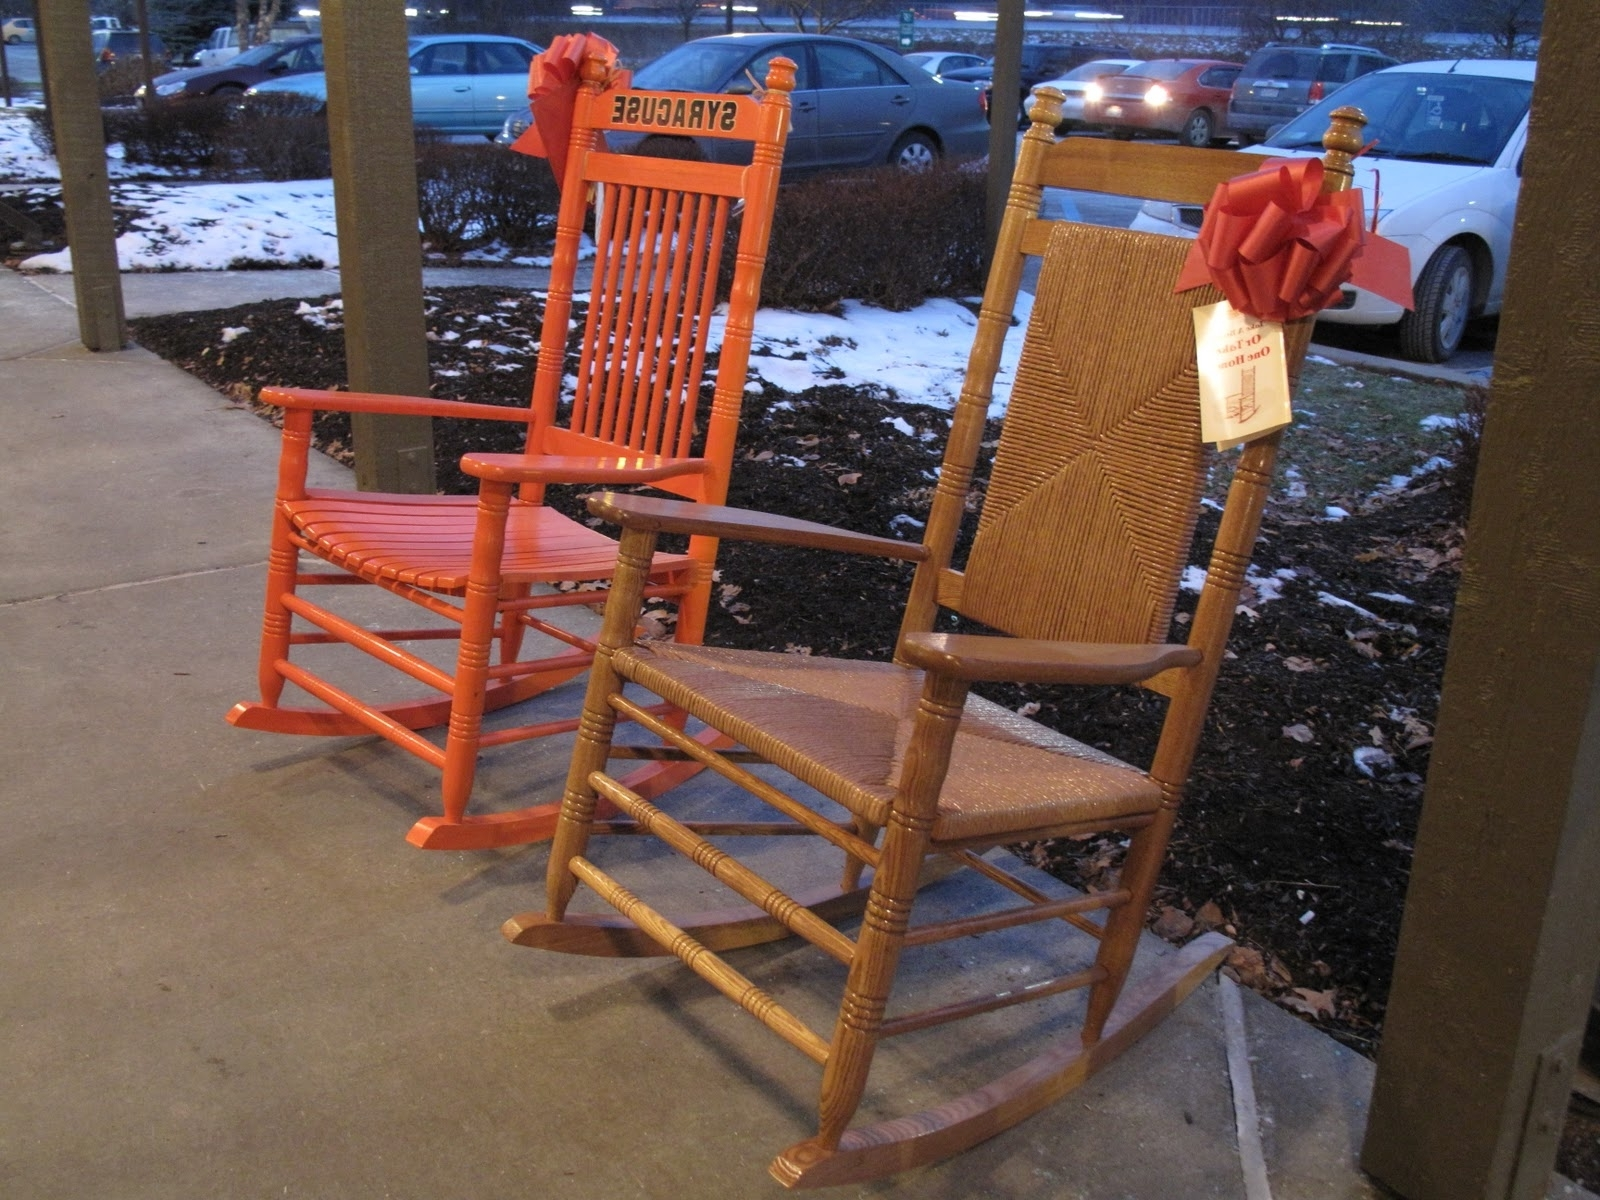 Well Known Neonlimesugdom Cracker Barrel Rocking Chairs Military Within Rocking Chairs At Cracker Barrel (View 14 of 15)